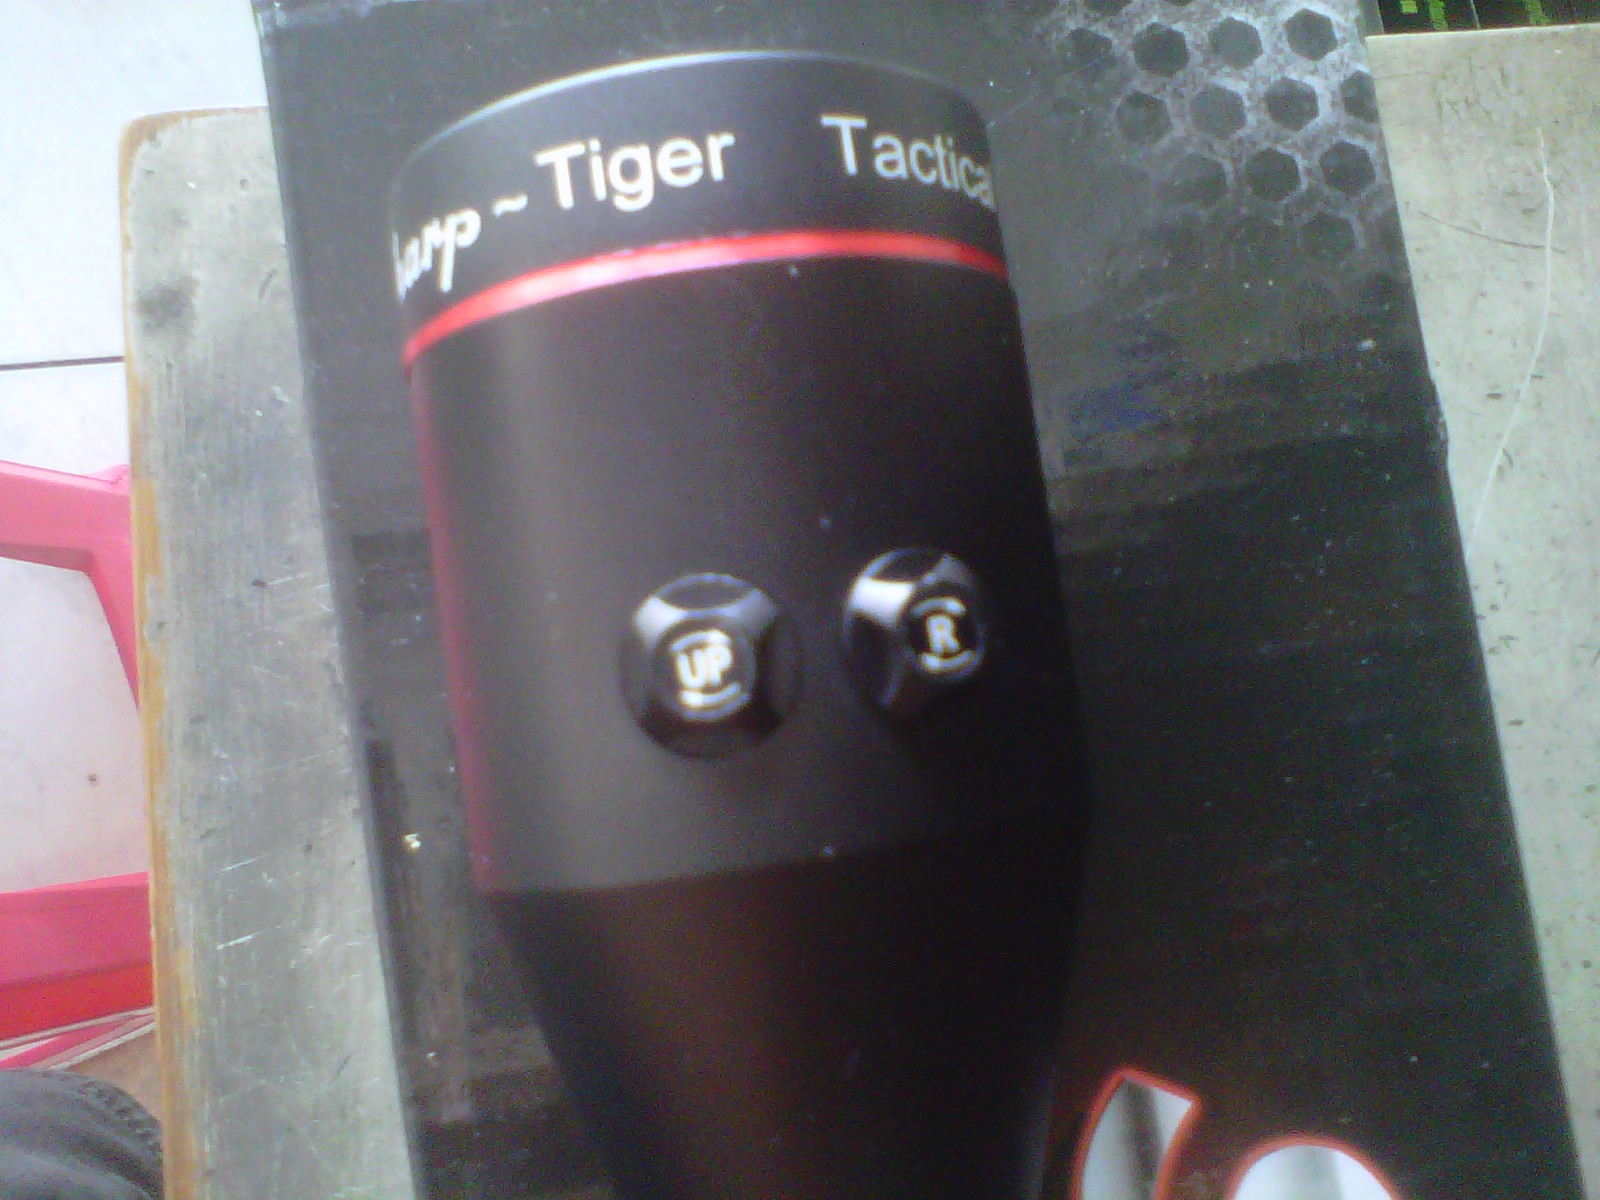 Guns and hobbies telescope sharp tiger e with laser pointer